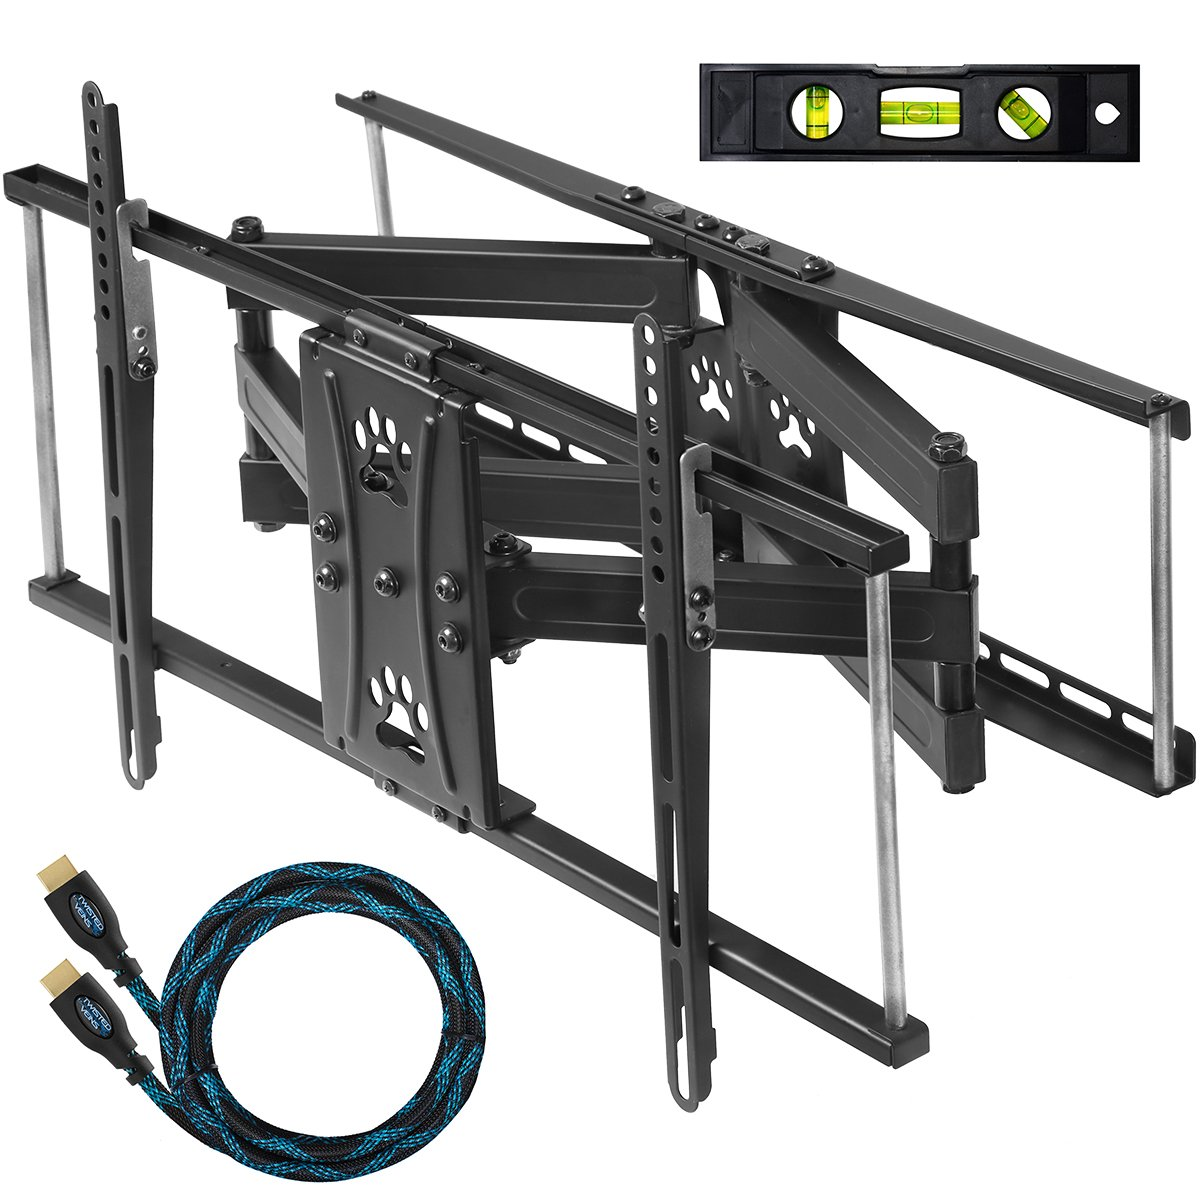 amazoncom cheetah mounts apdam2b dual arm 20u201d extension tv wall mount bracket for 3265u201d tvs many up to 75u201d or more up to vesa 600 and